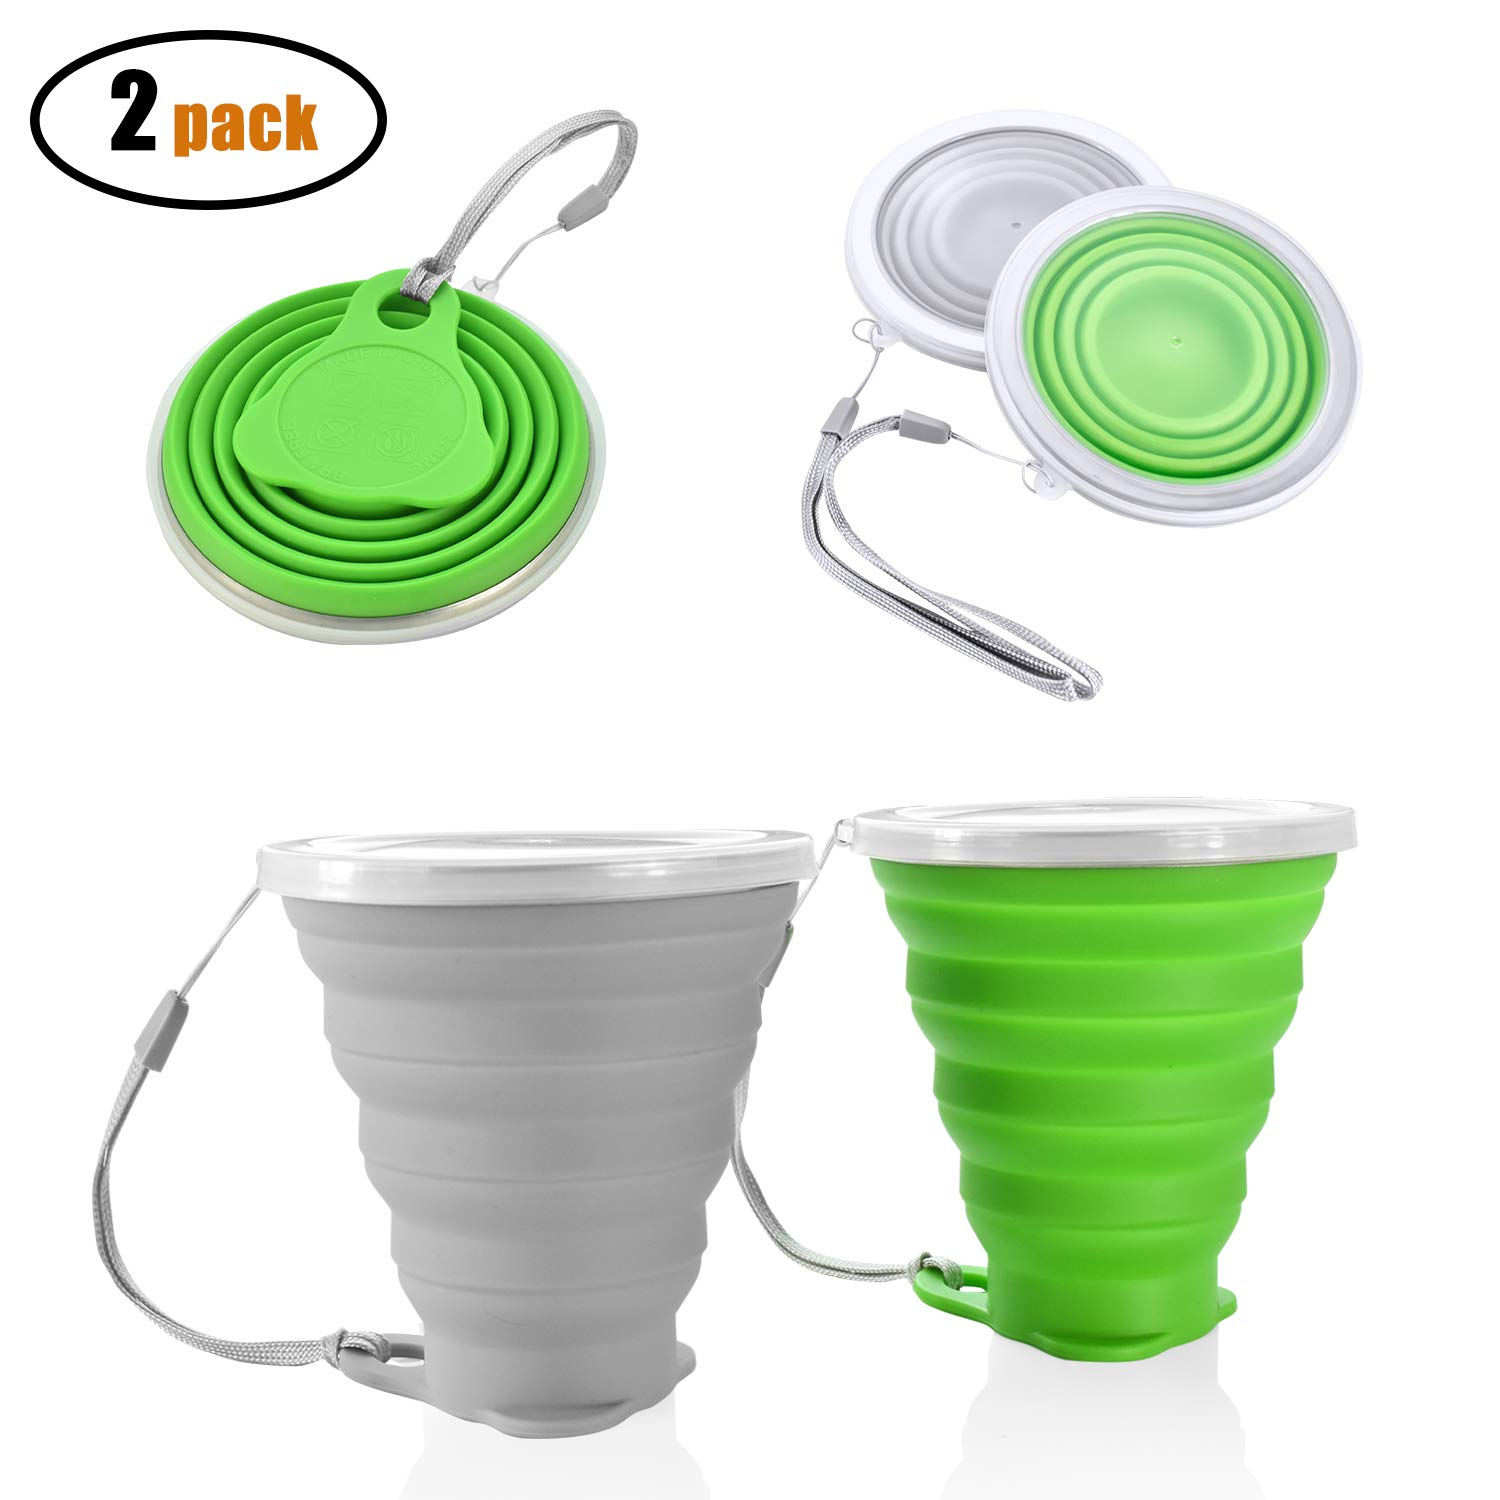 Seafirst Silicone Collapsible Cup BAP Free Portable Folding Cup with Lid Travel Camping Hiking 2 pcs Set